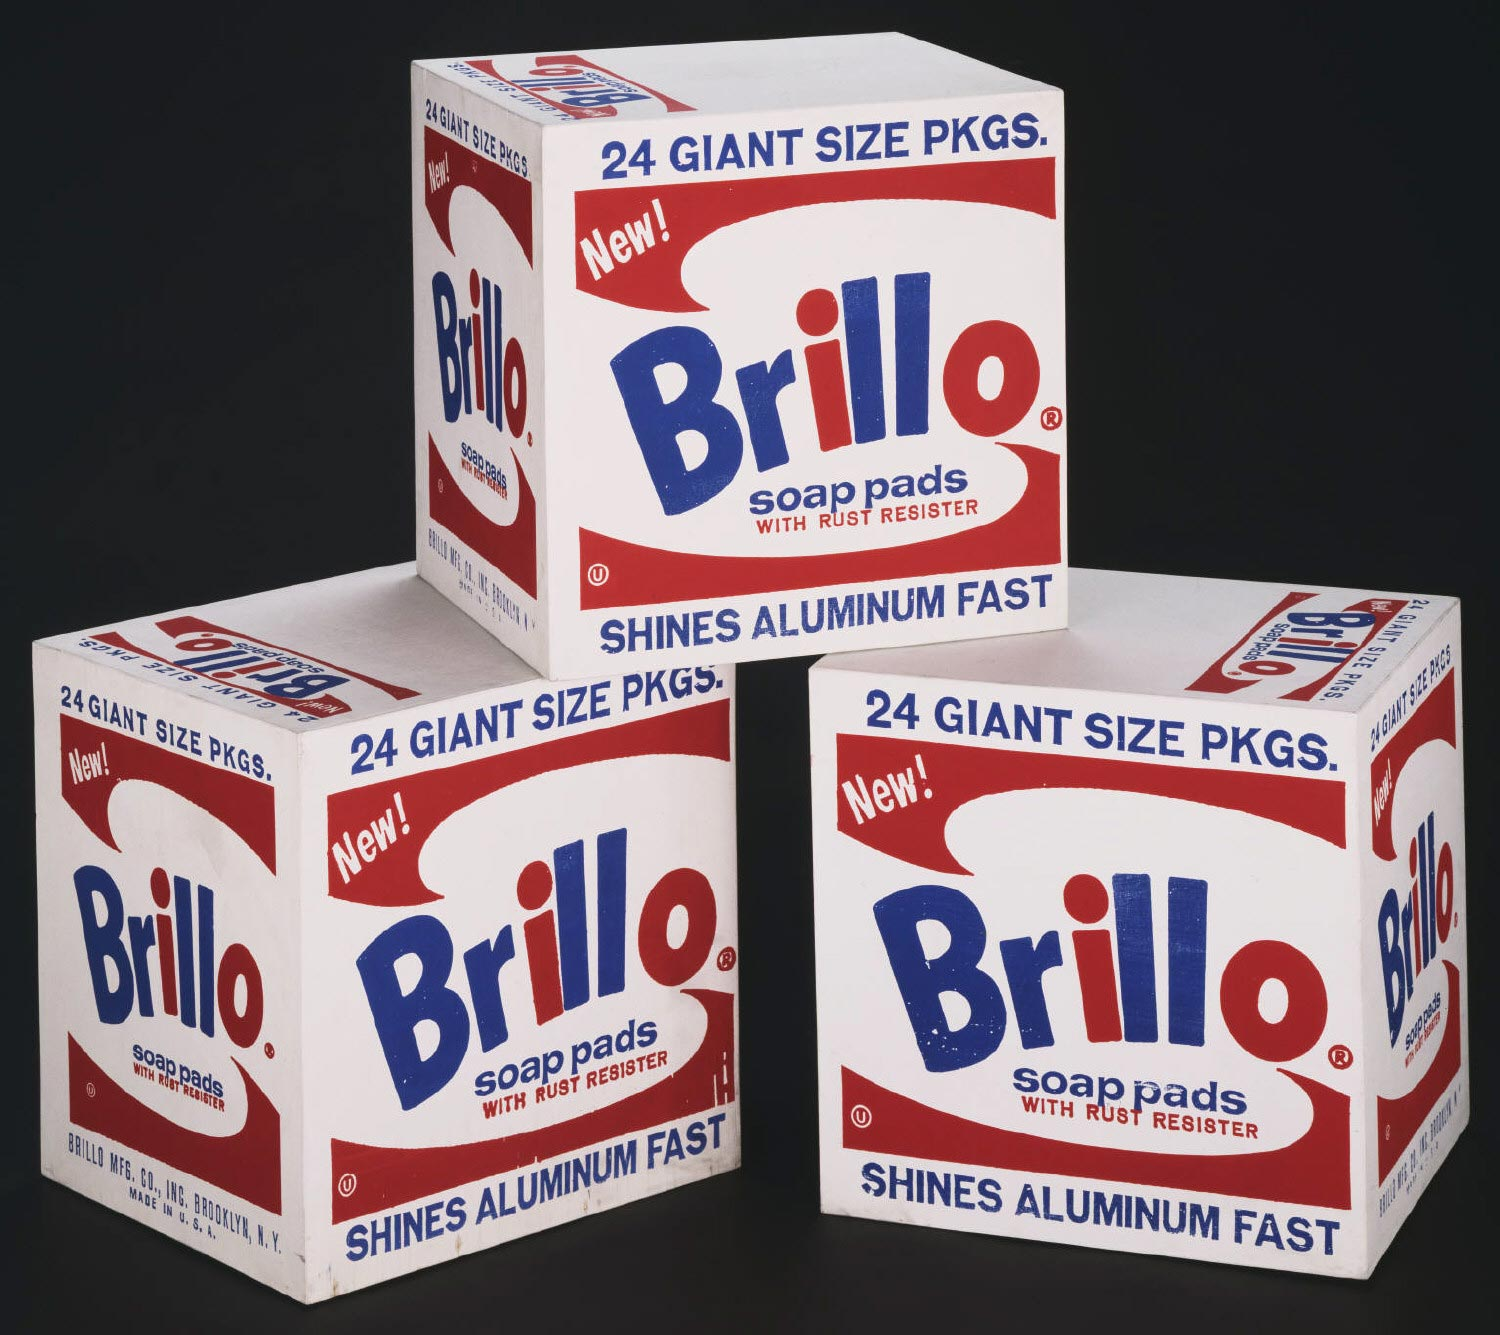 Warhol's Brillo Boxes